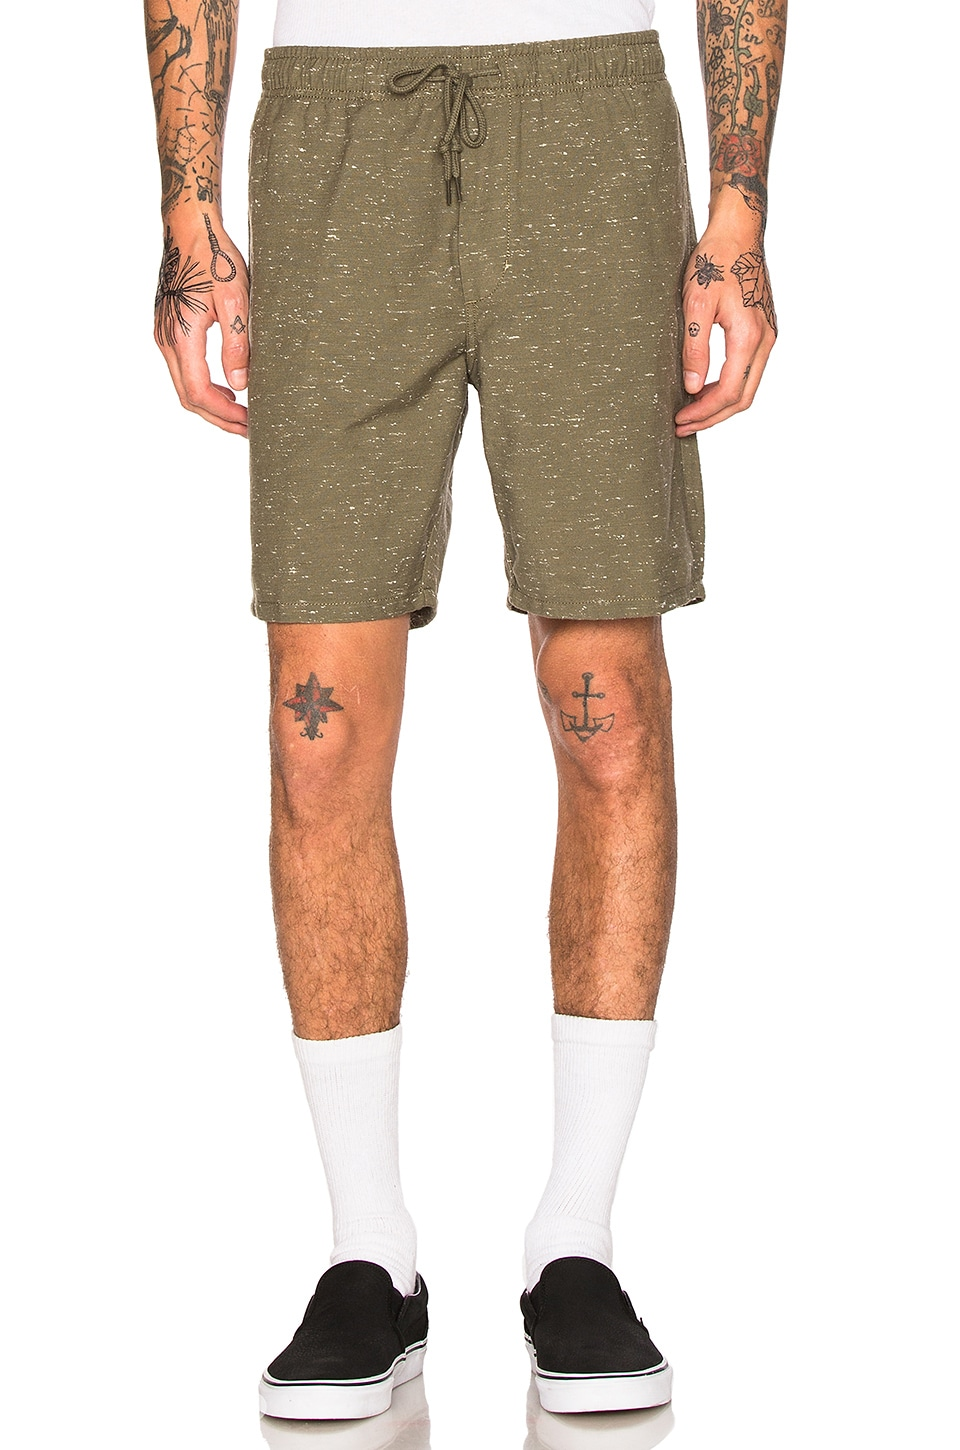 Palmer Shorts by Obey